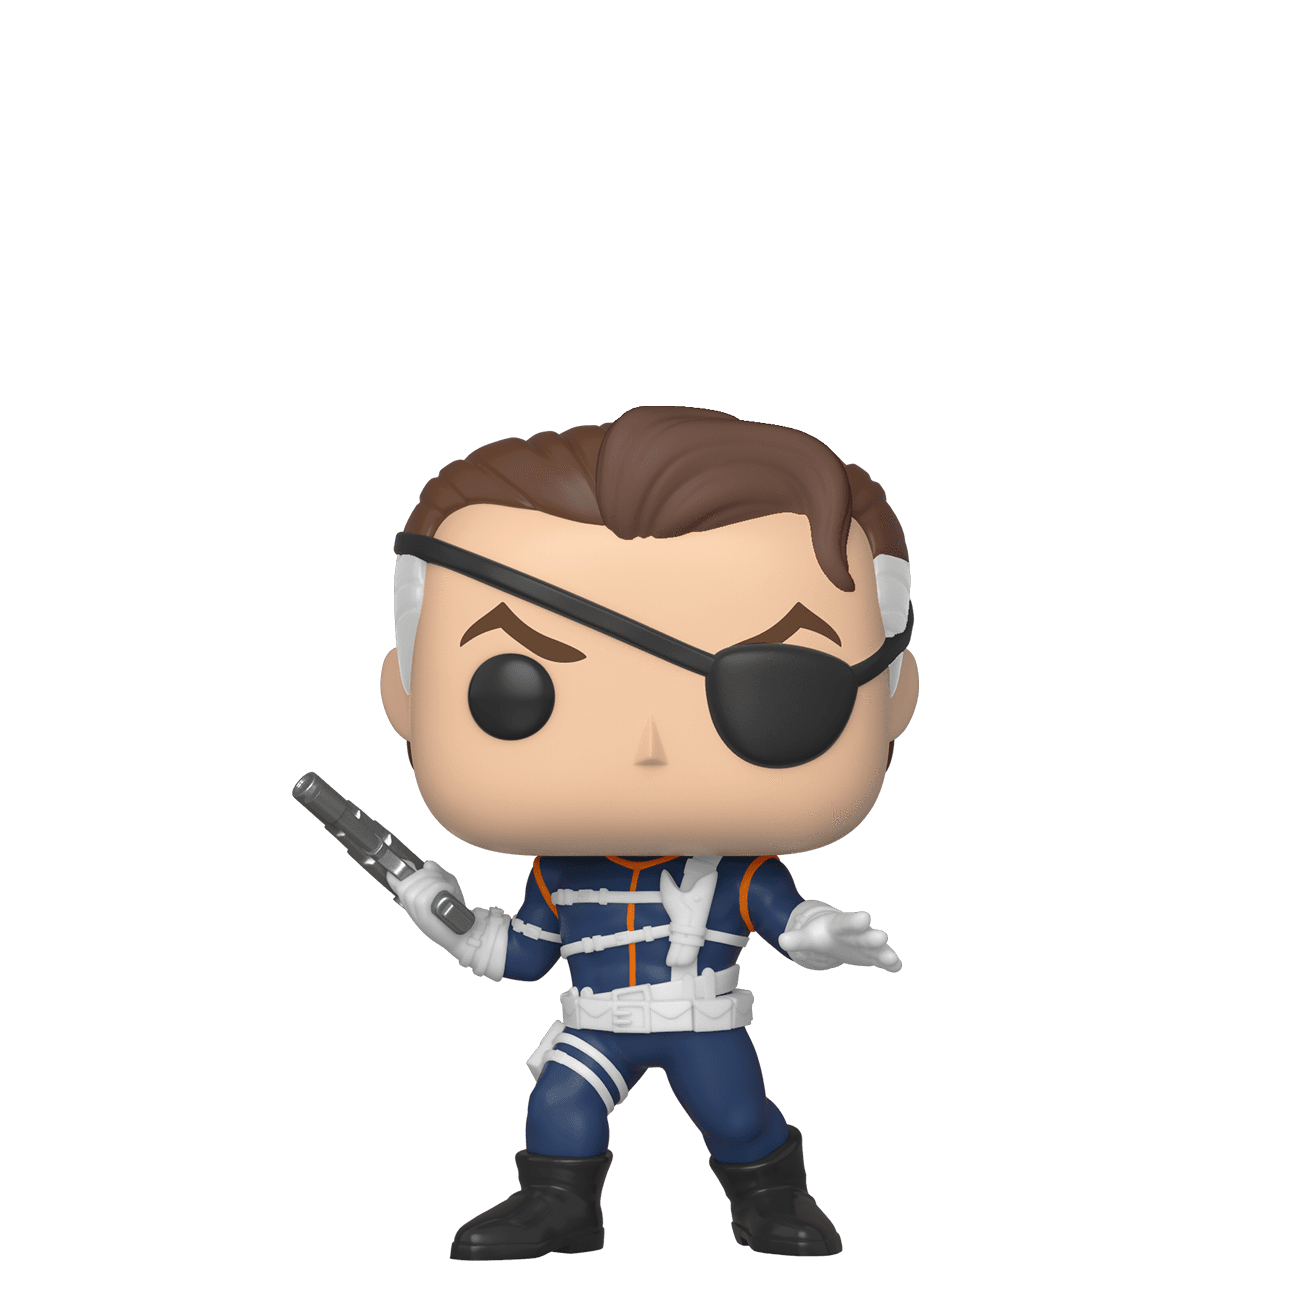 Funko Pop! MARVEL - MARVEL #618 - Nick Fury (First Appearance) (Fall Convention 2019 Exclusive) - Simply Toys